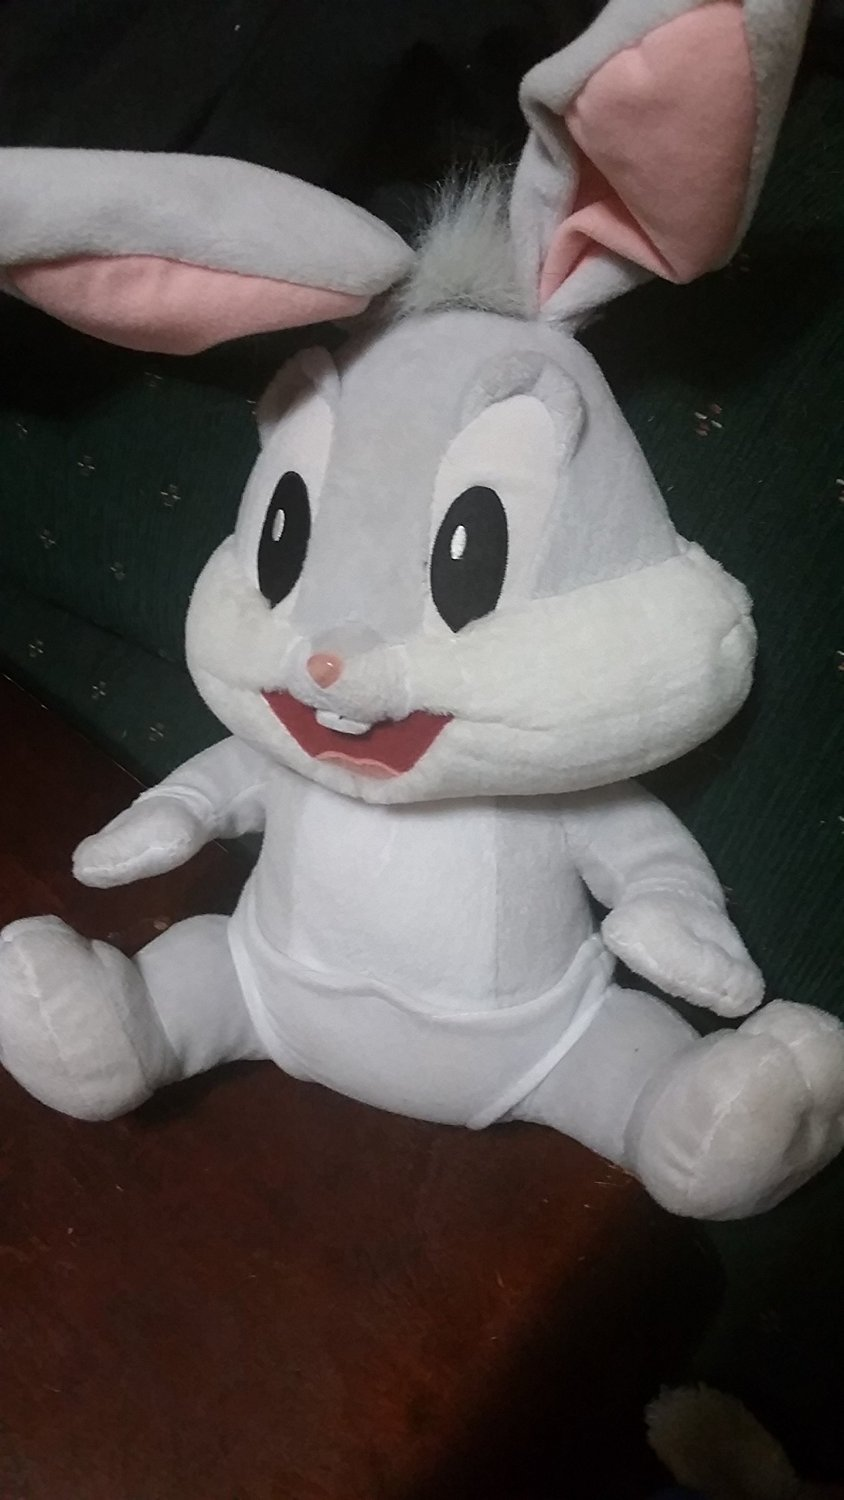 Buy 1999 Baby Looney Tunes Talking Bugs Bunny Sitting 16 Plush If Your Happy In Cheap Price On Alibaba Com